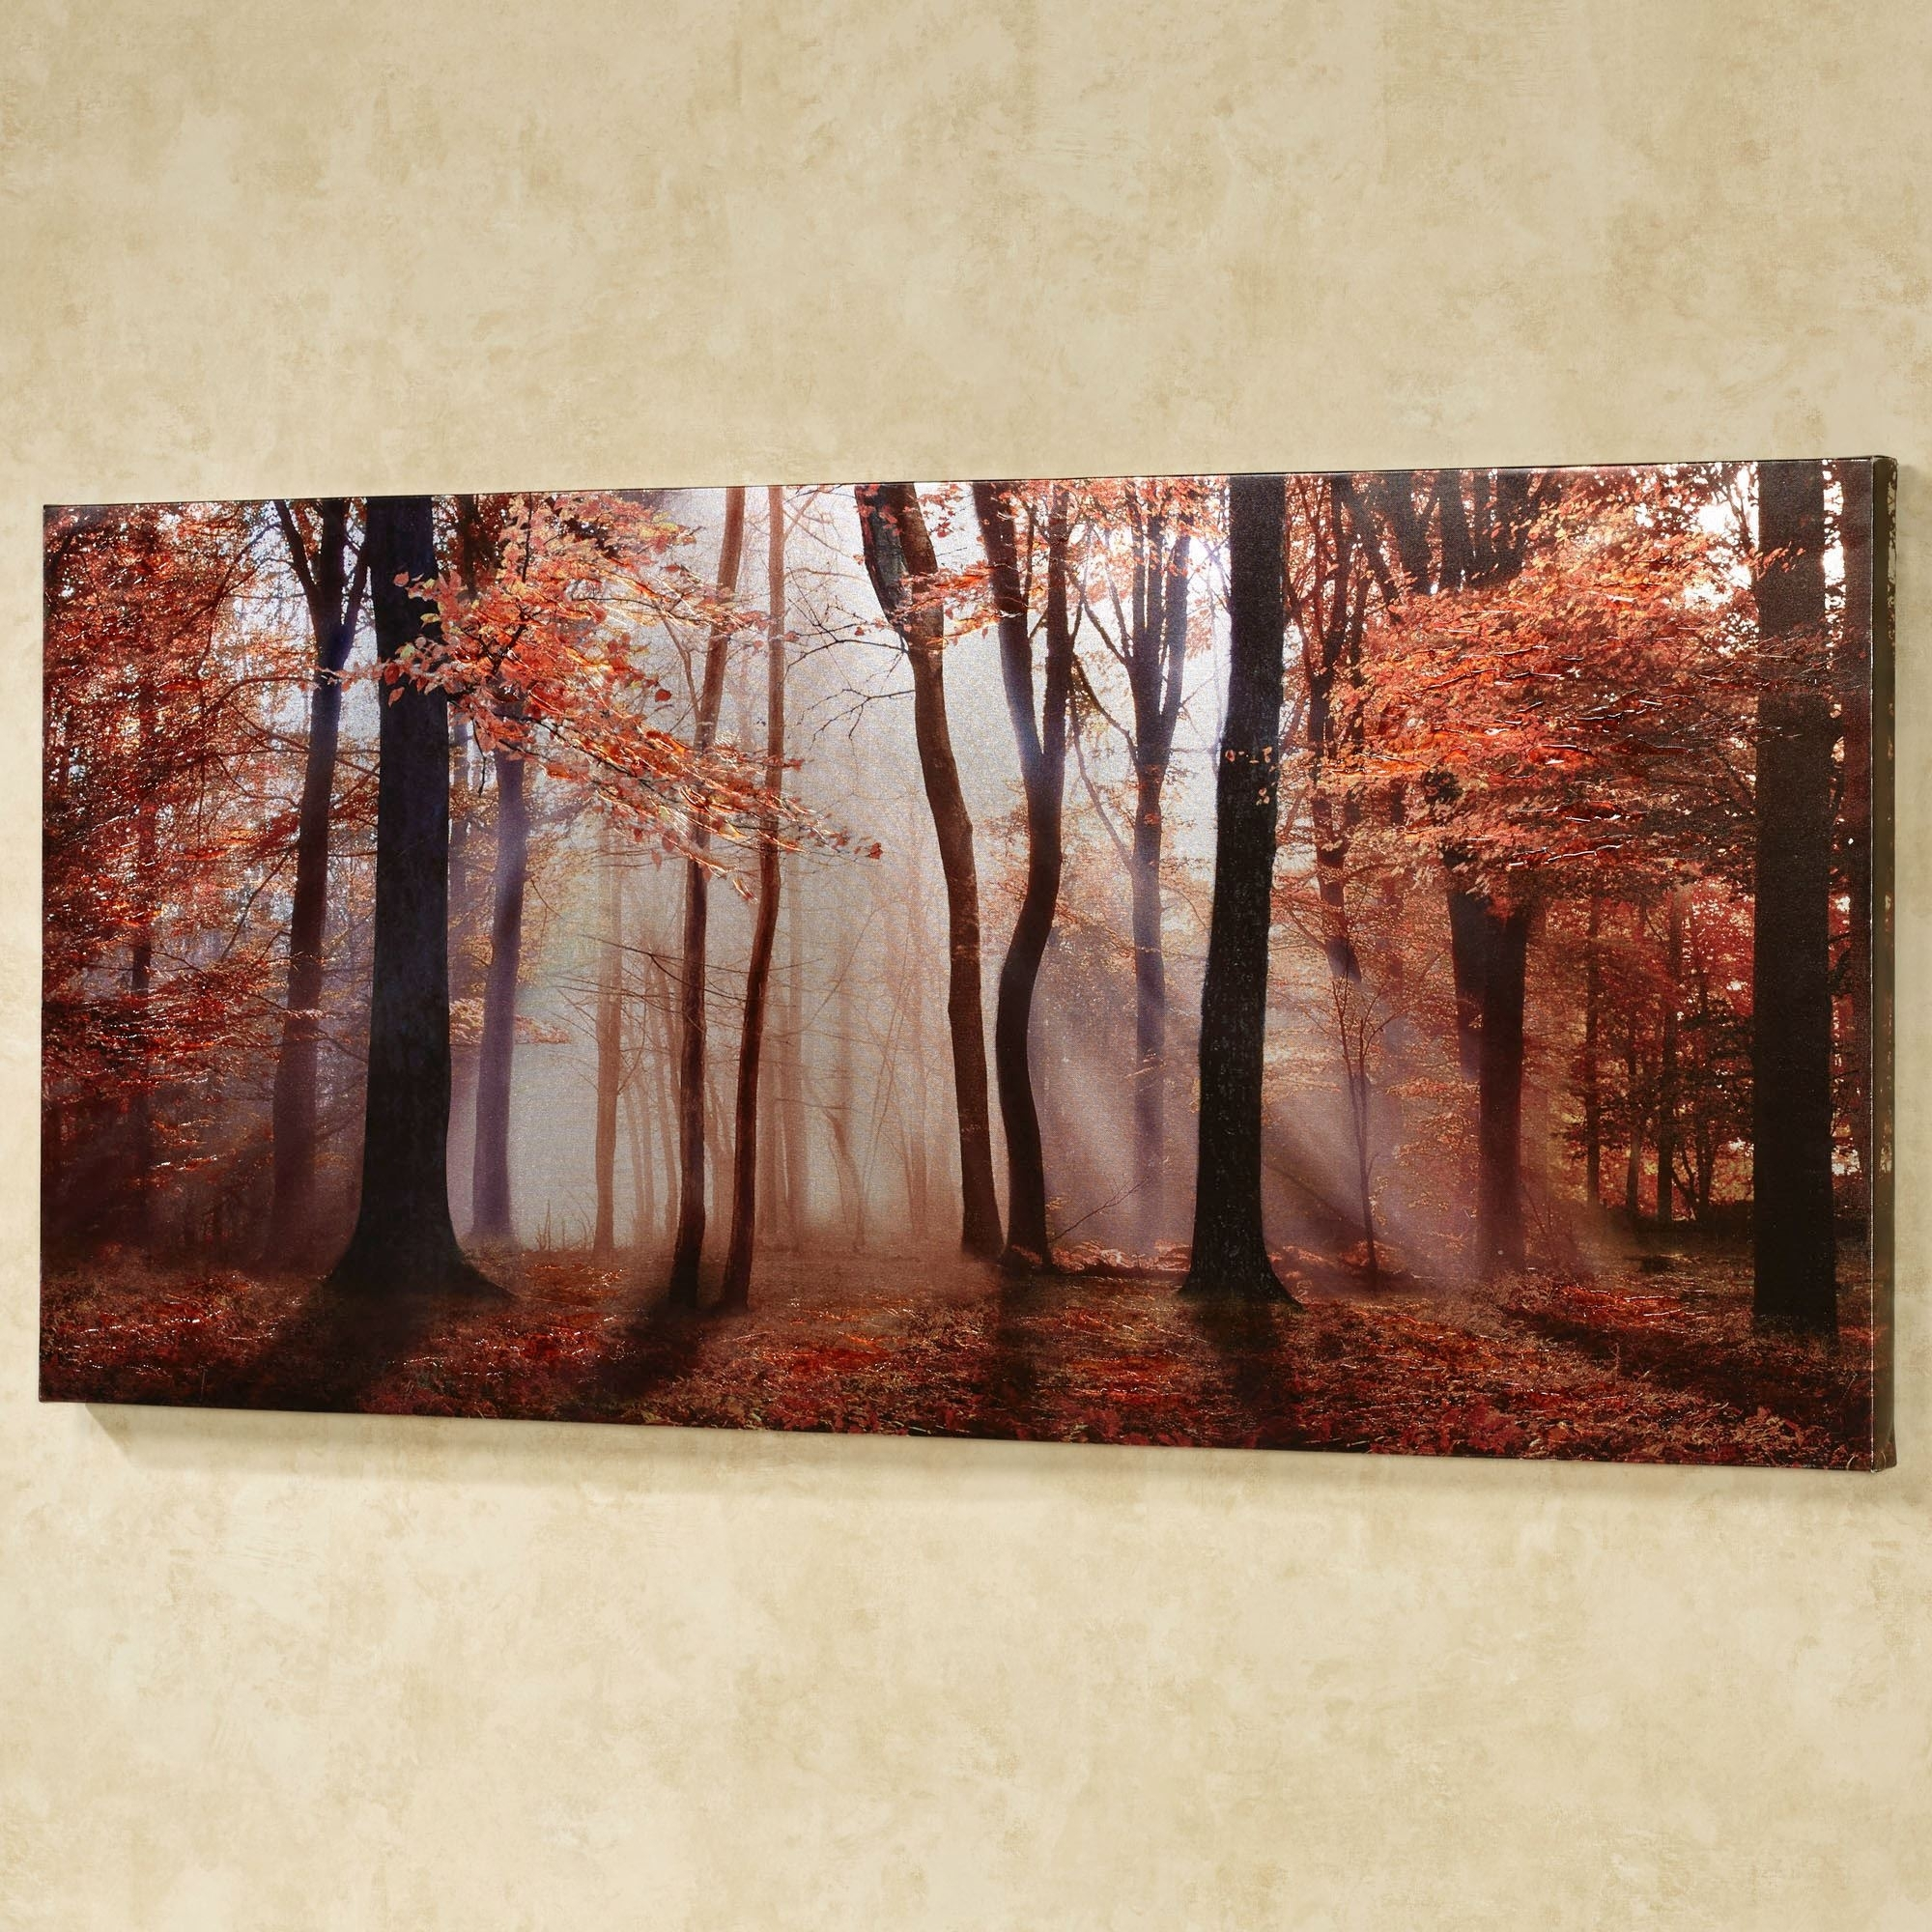 Autumns Allure Giclee Canvas Wall Art Intended For Best And Newest Wall Canvas Art (View 8 of 15)